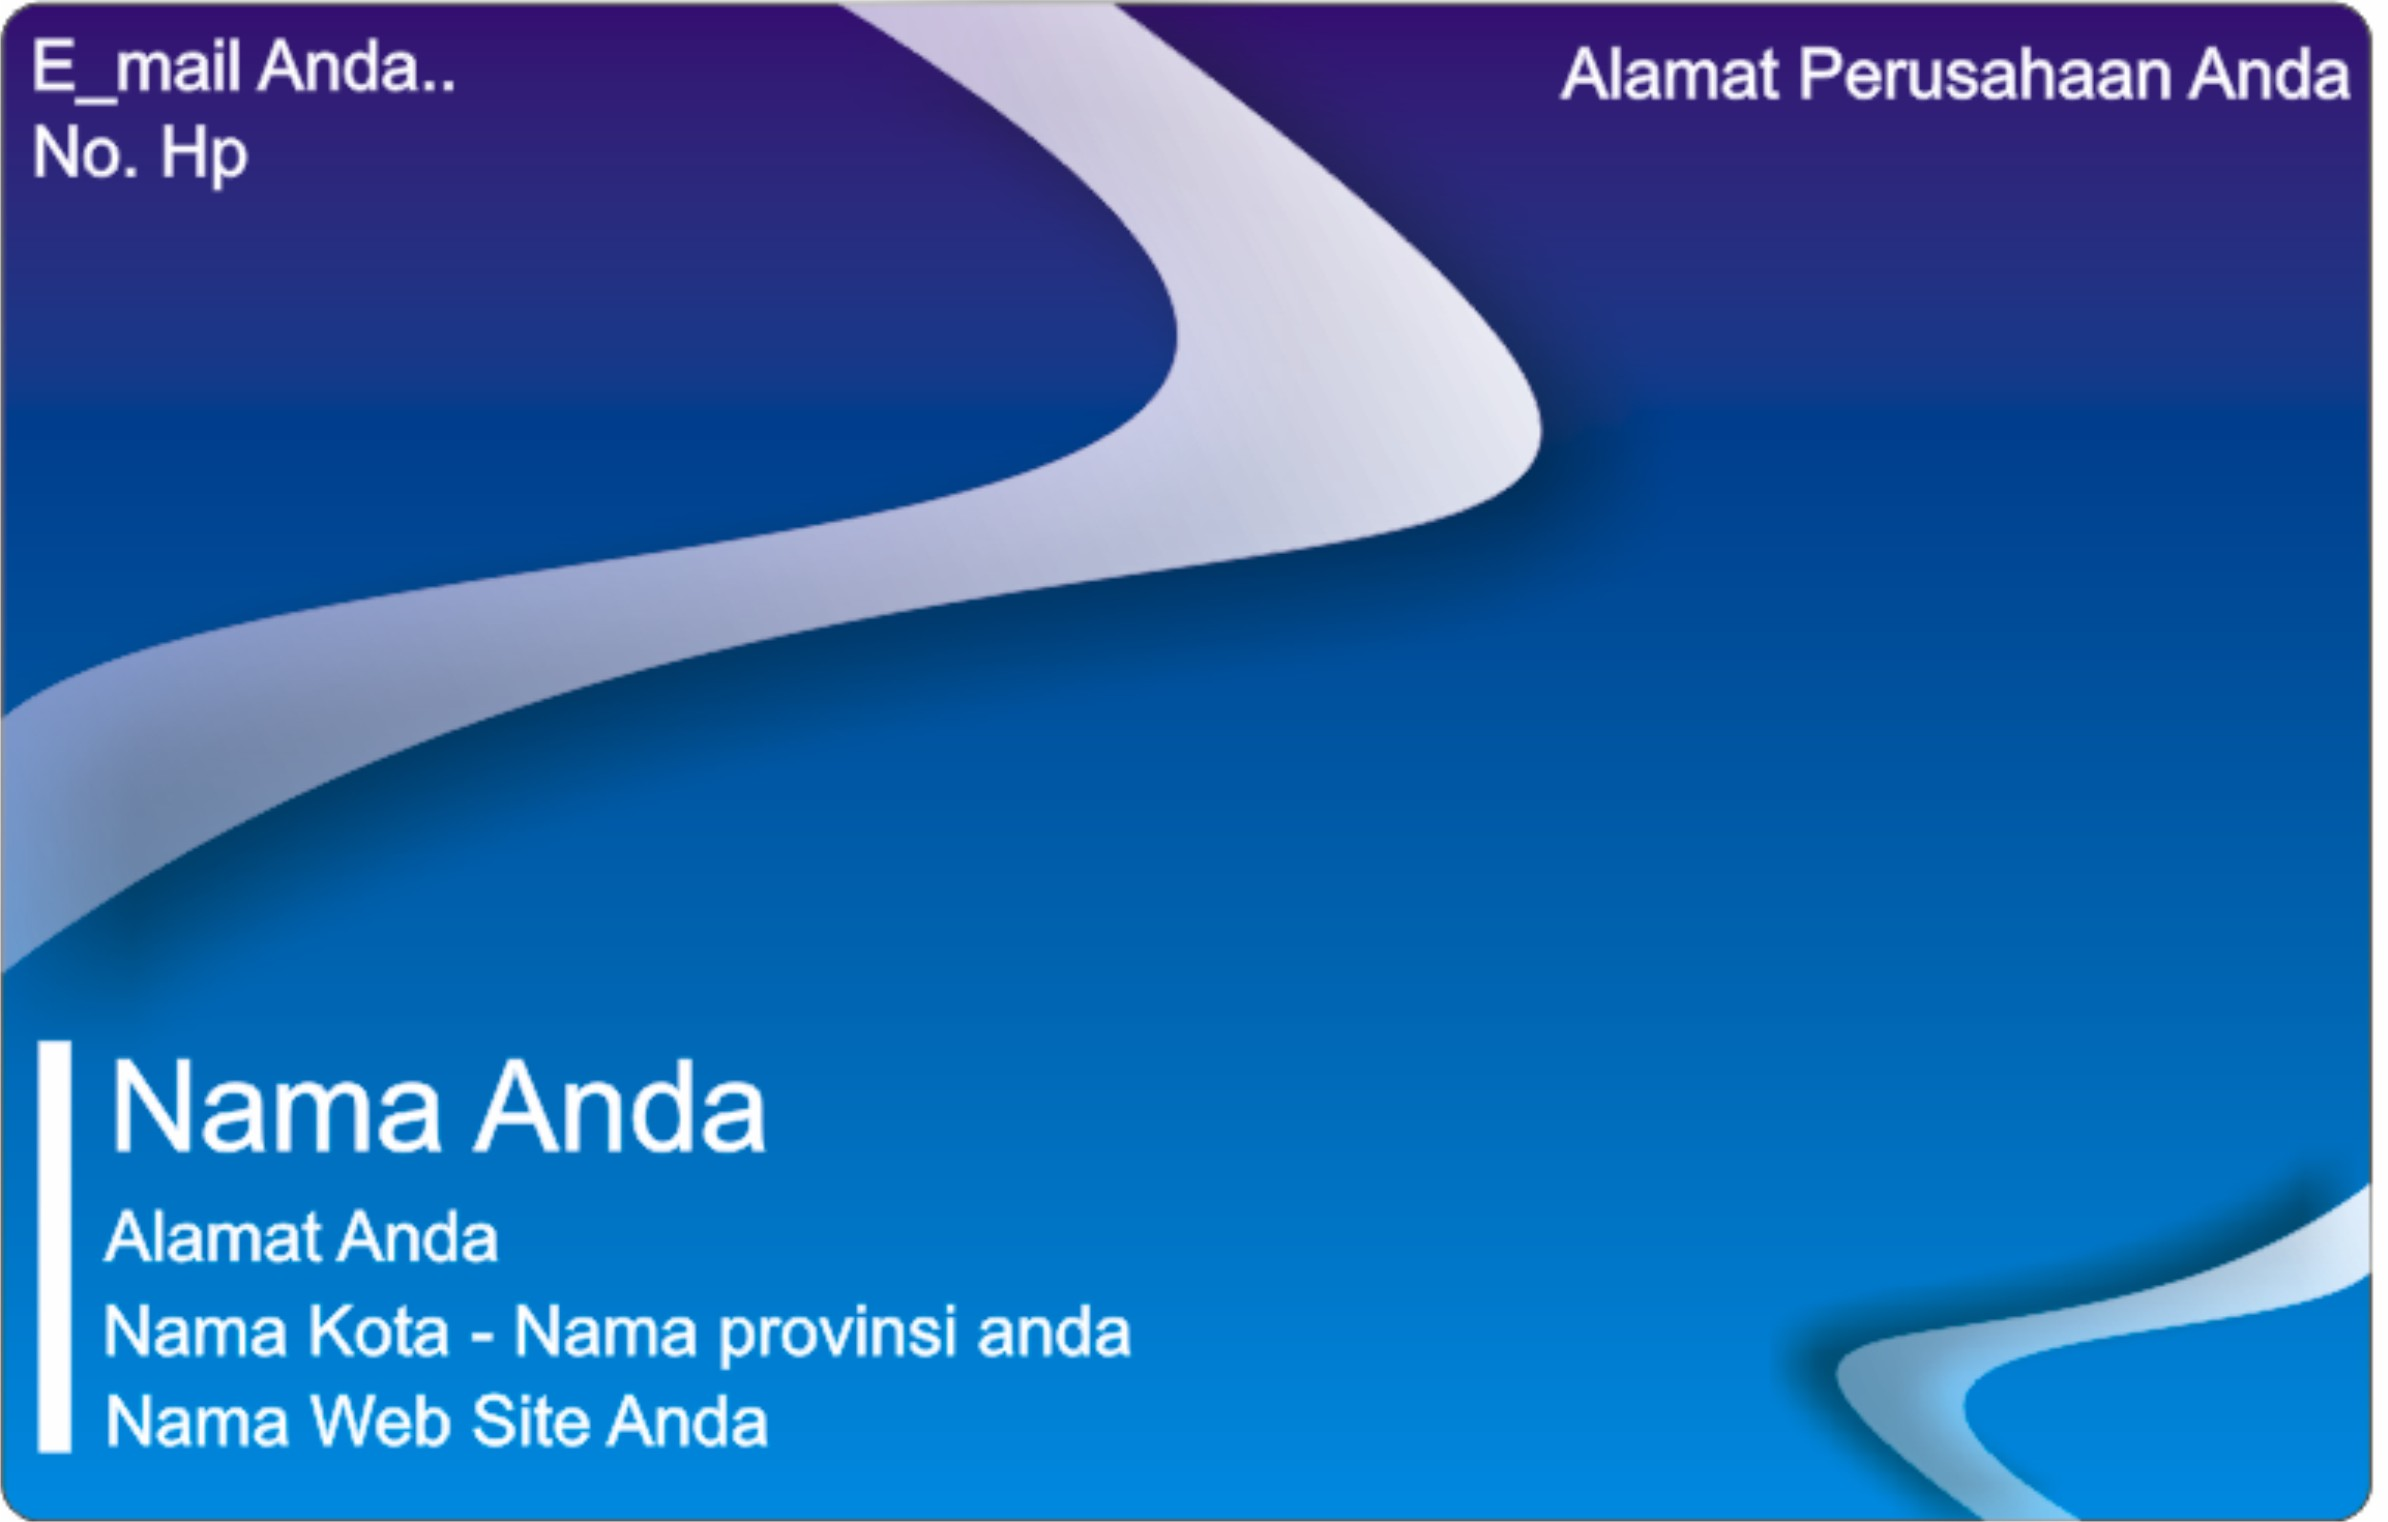 Download 540 Koleksi Background Biru Kartu Nama Gratis Terbaik